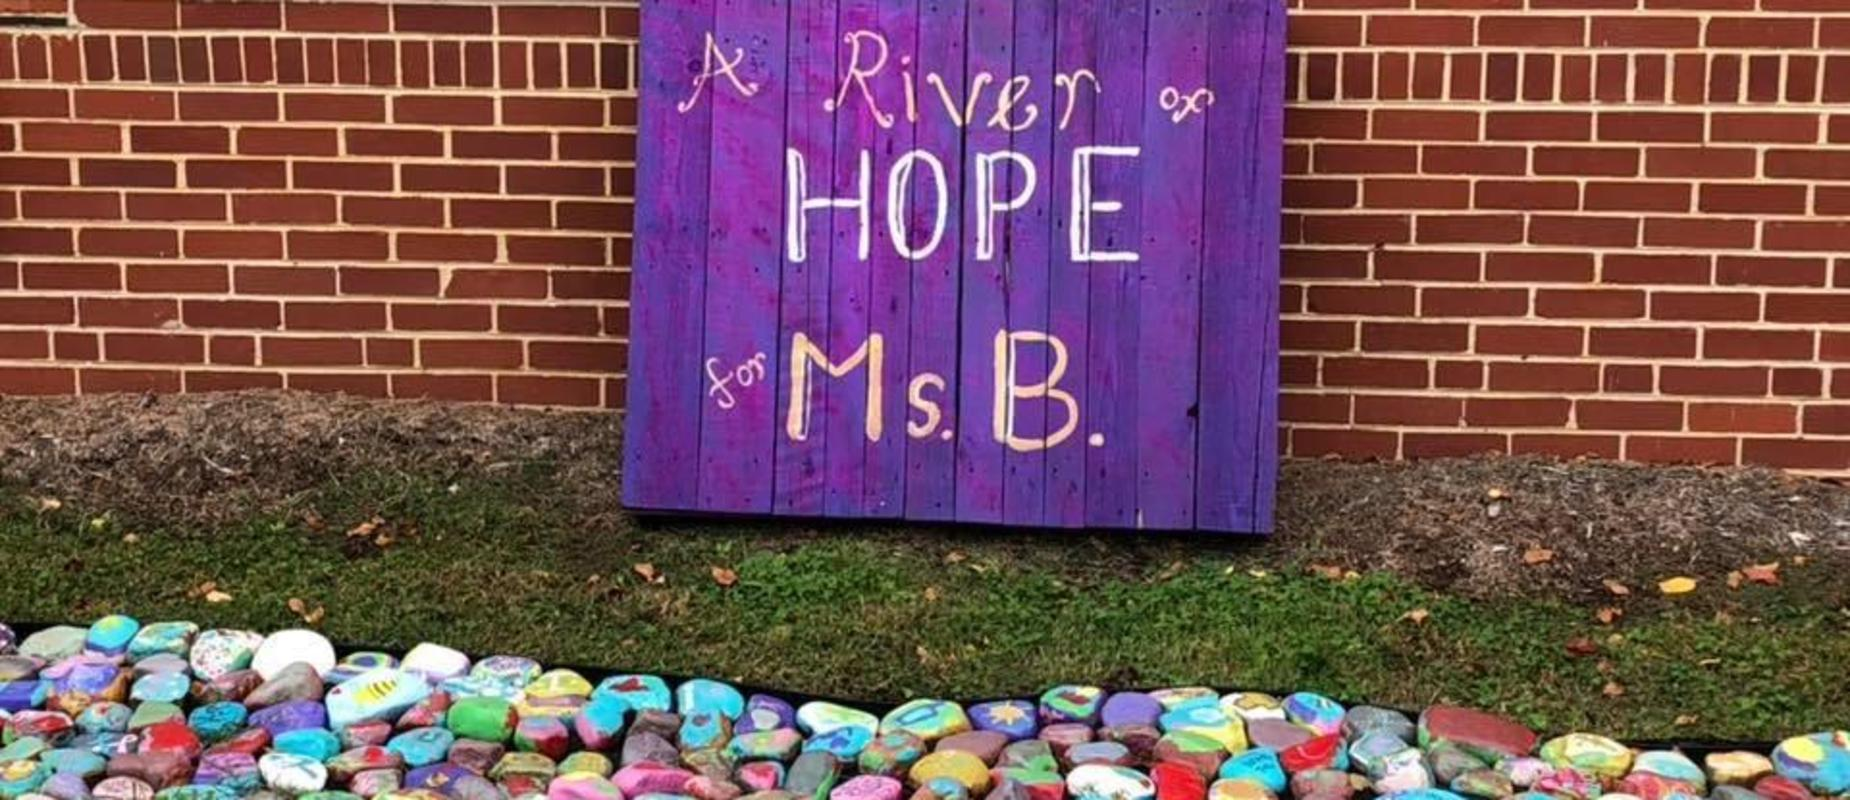 A River of Hope for Mrs. B